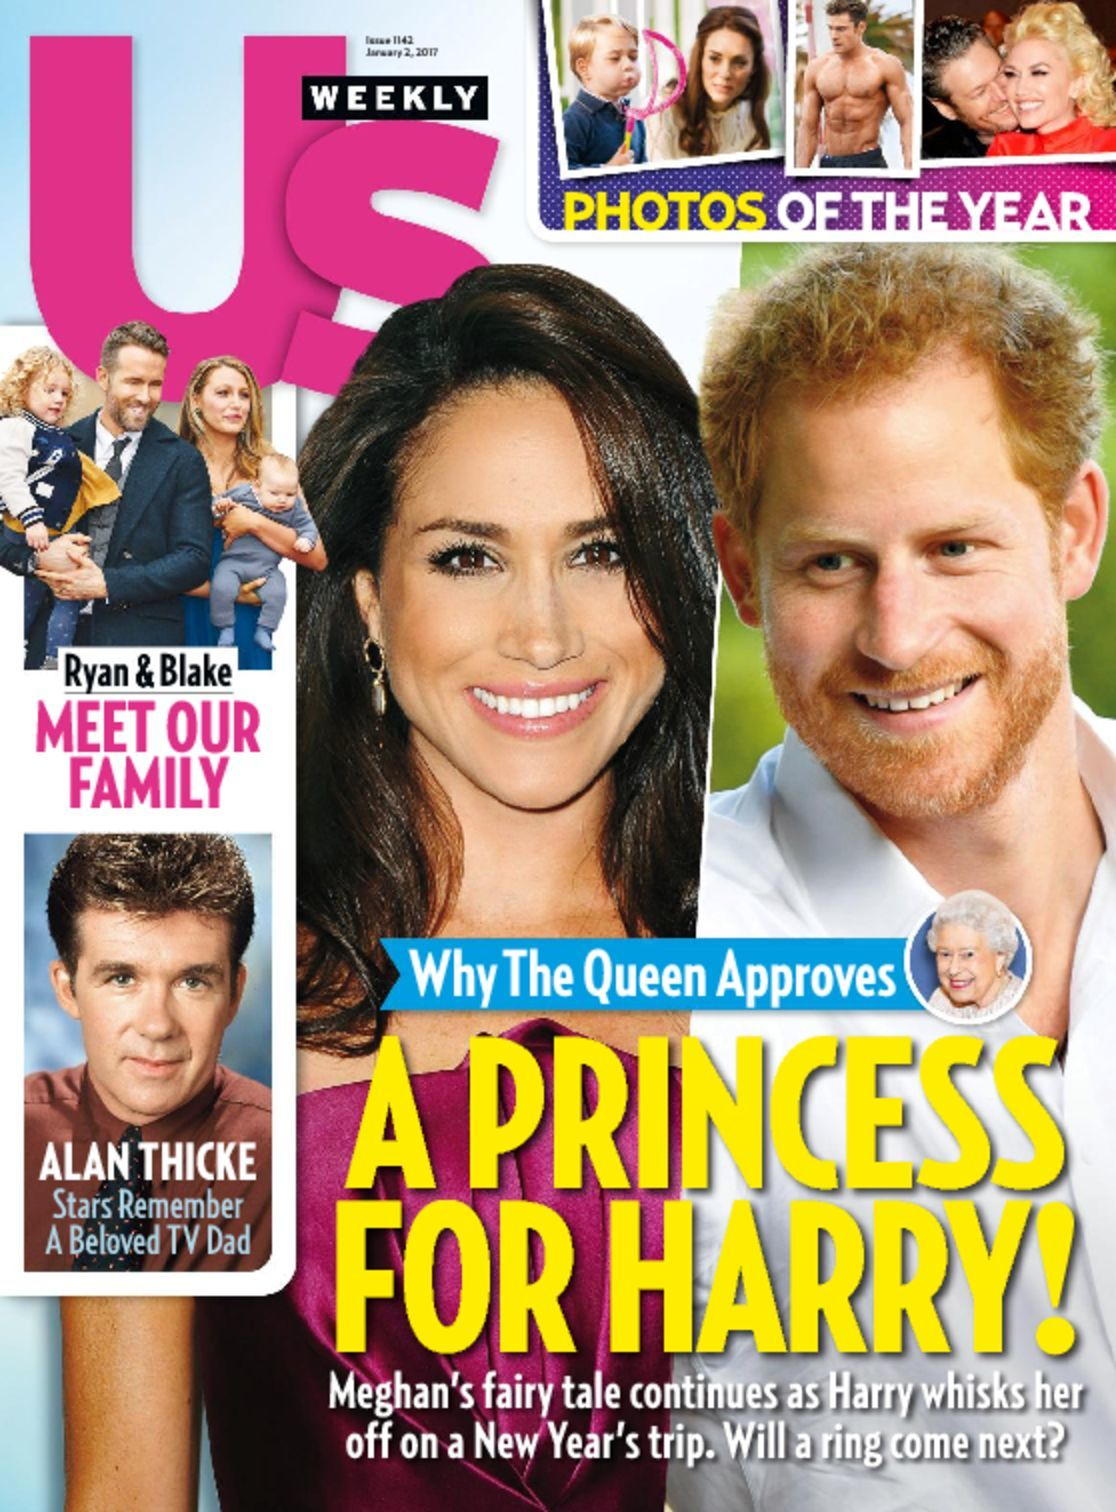 Cover image for Us Weekly includes numerous images of celebrities on a colorful cover.